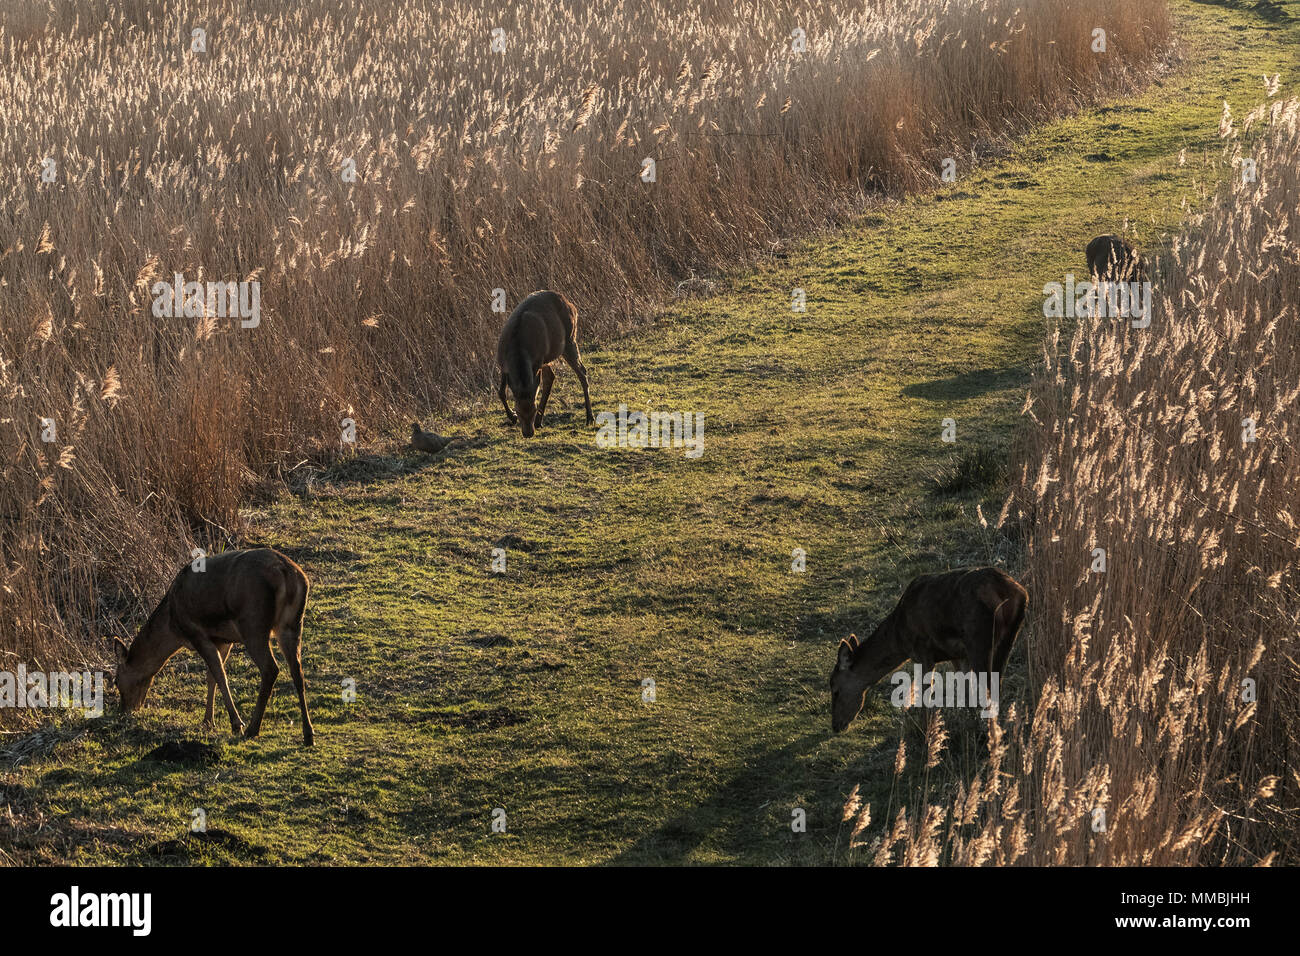 High angle view of deer grazing along a narrow grass trail lined by tall reeds. - Stock Image